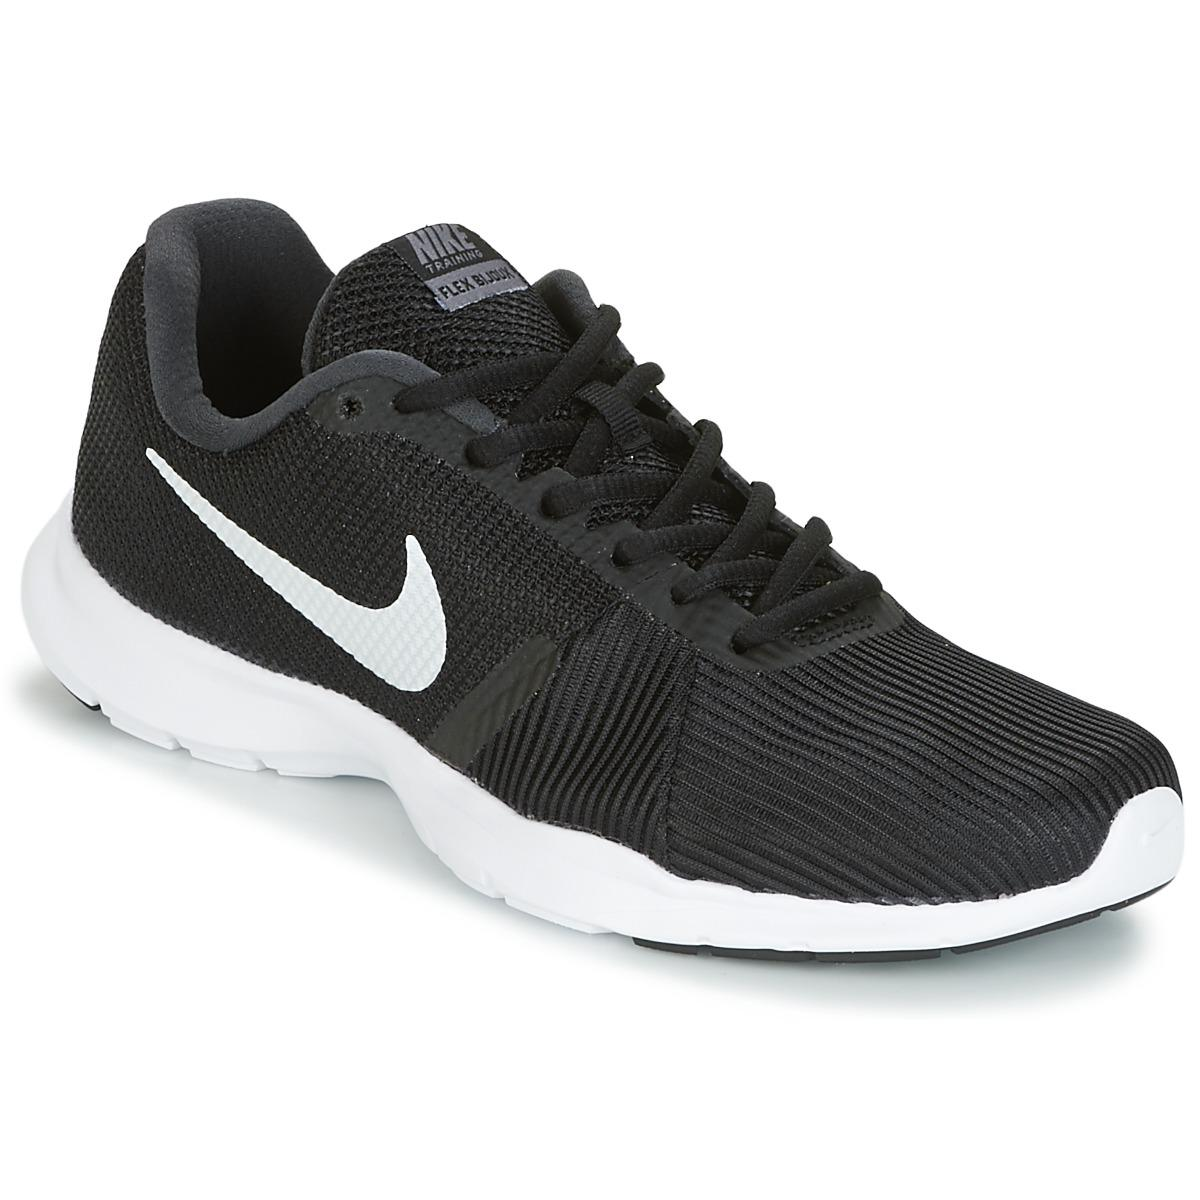 1e7e7b169 nike-black-Flex-Bijoux-Training-W-Womens-Sports-Trainers-shoes-In-Black.jpeg